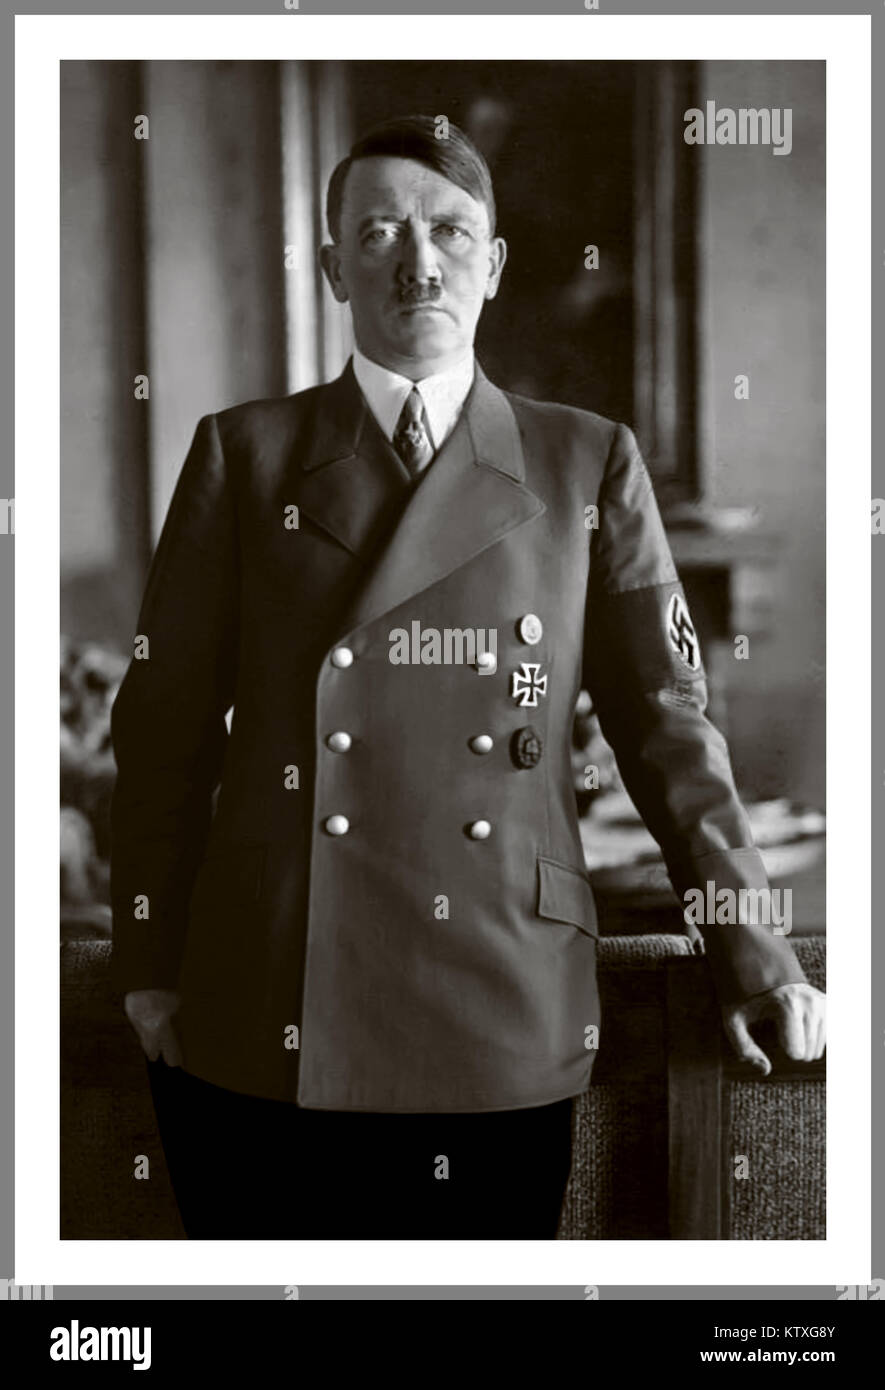 PORTRAIT ADOLF HITLER in military uniform with swastika armband  portrait of Fuhrer Adolf Hitler by Heinrich Hoffman - Stock Image